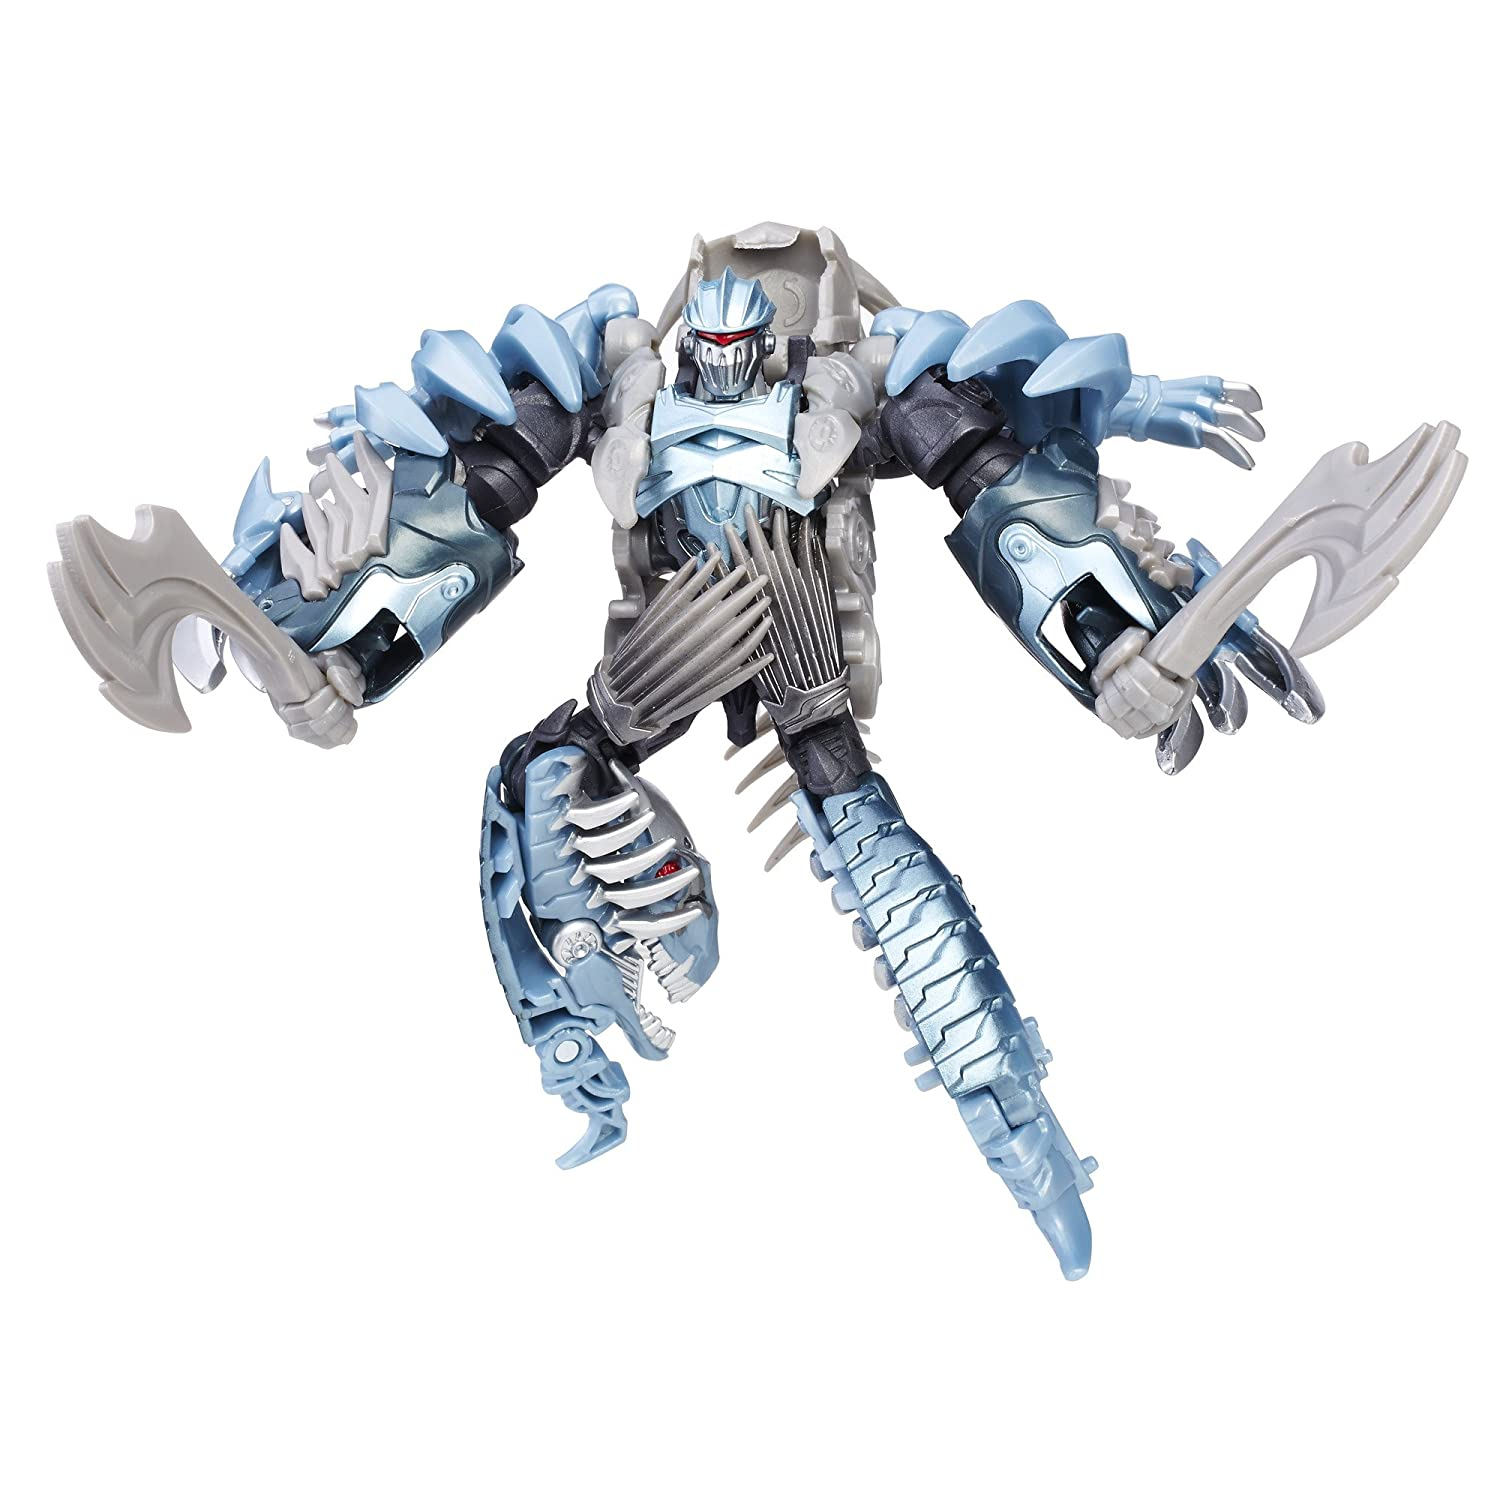 Transformers: The Last Knight Premier Edition Deluxe Dinobot Slash Hasbro Canada Corporation C0887